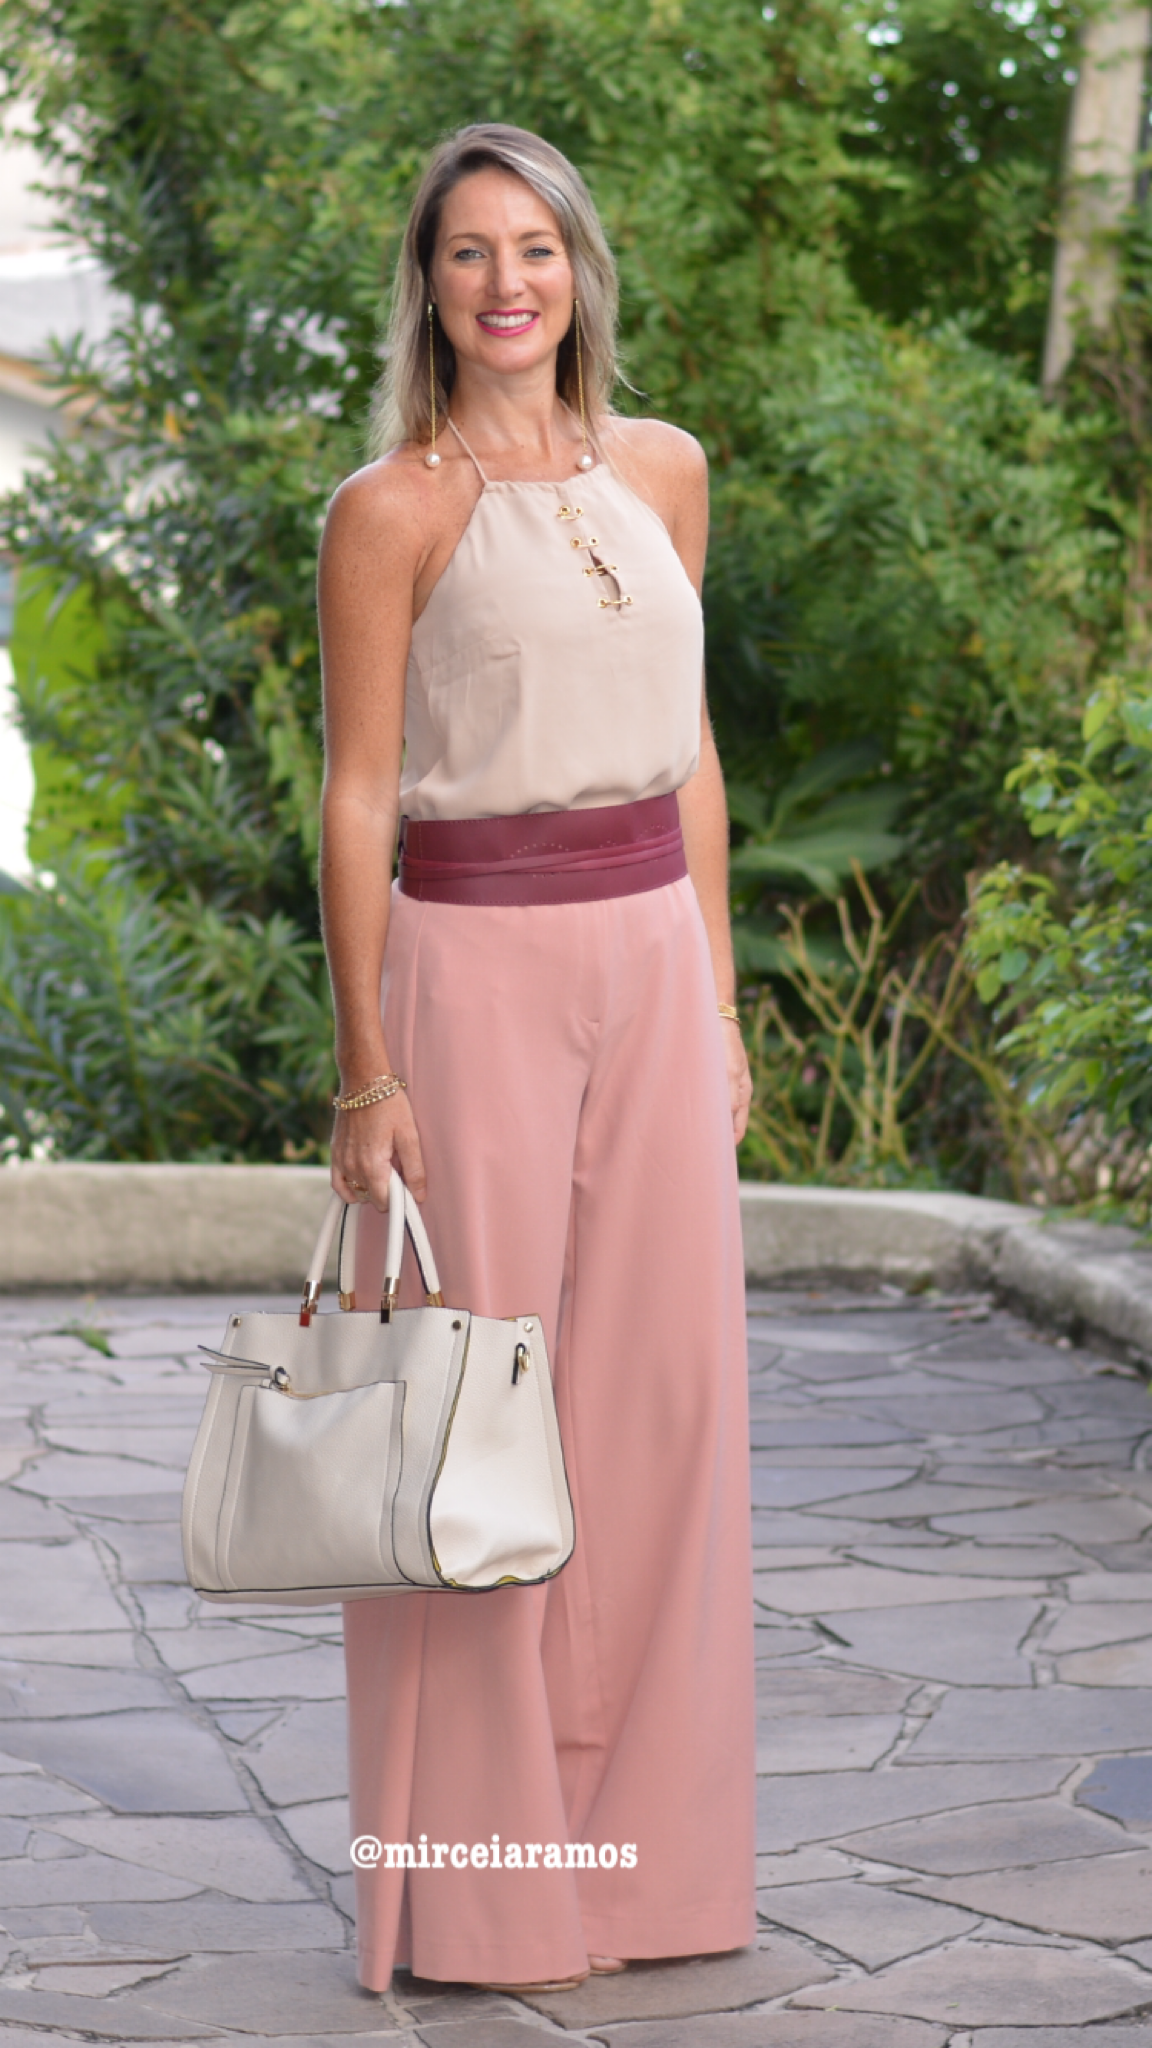 Look de trabalho - look do dia - look corporativo - moda no trabalho - work outfit - office outfit -  spring outfit - look executiva - summer outfit - pantalona - rosa - rose